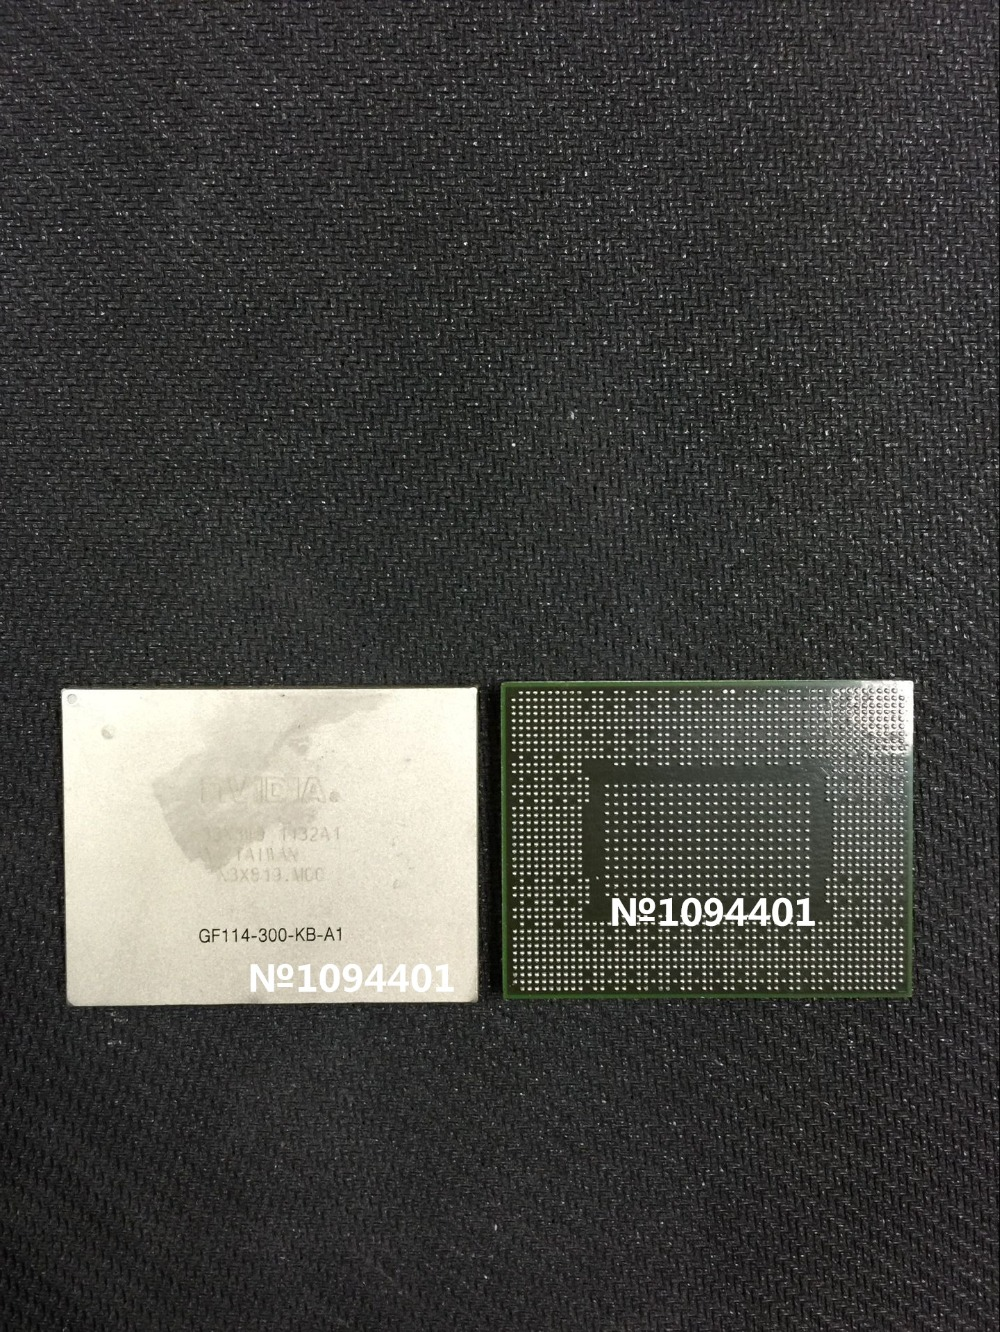 1pcs*      GF114-300-KB-A1     BGA   IC   Chip gf114 325 a1 bag chip gf114 325 a1 brand new original binding can direct purchase